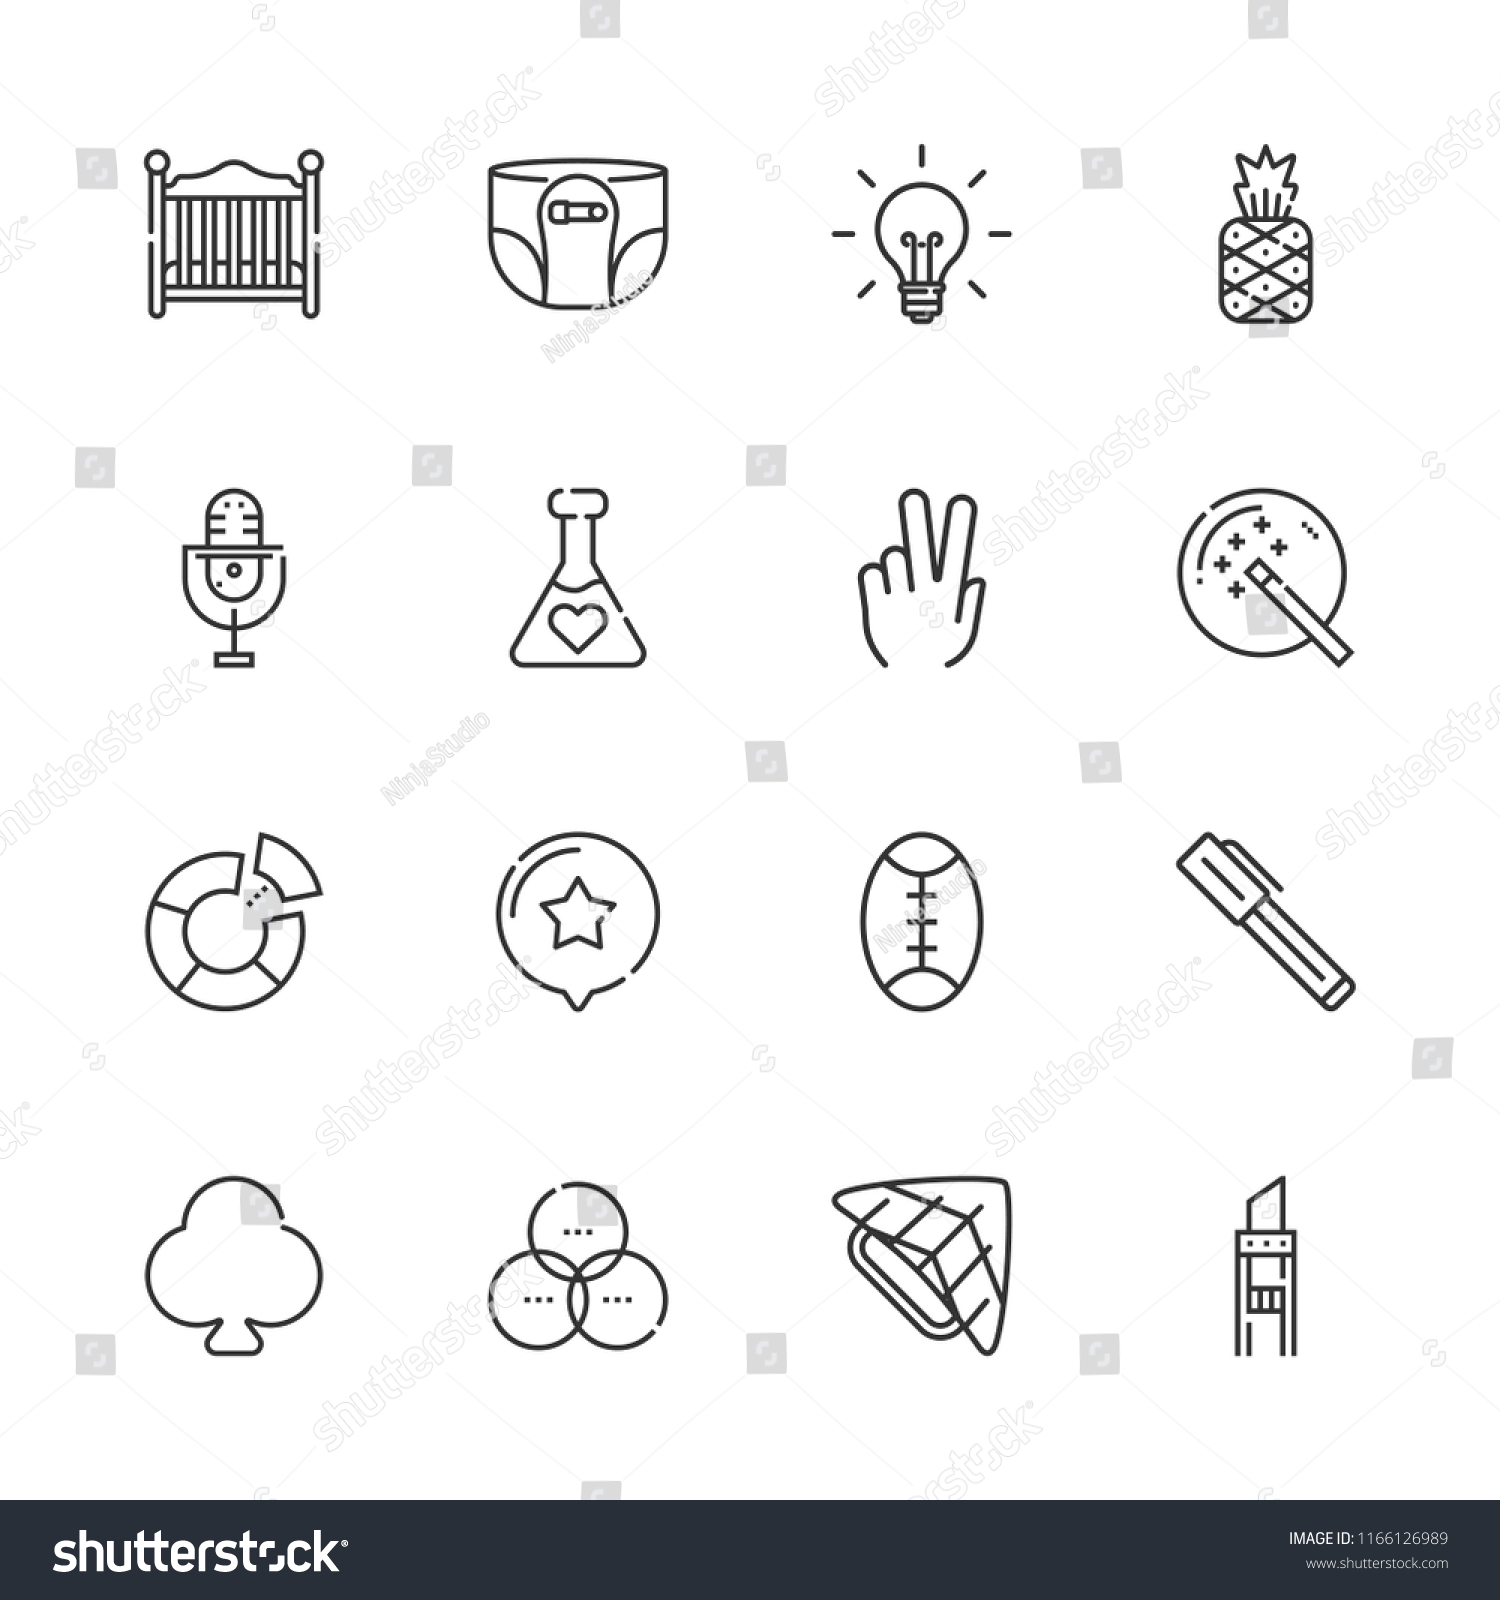 Baby Pineapple Pen Collection 16 Art Outline Icons Include Stock Vector